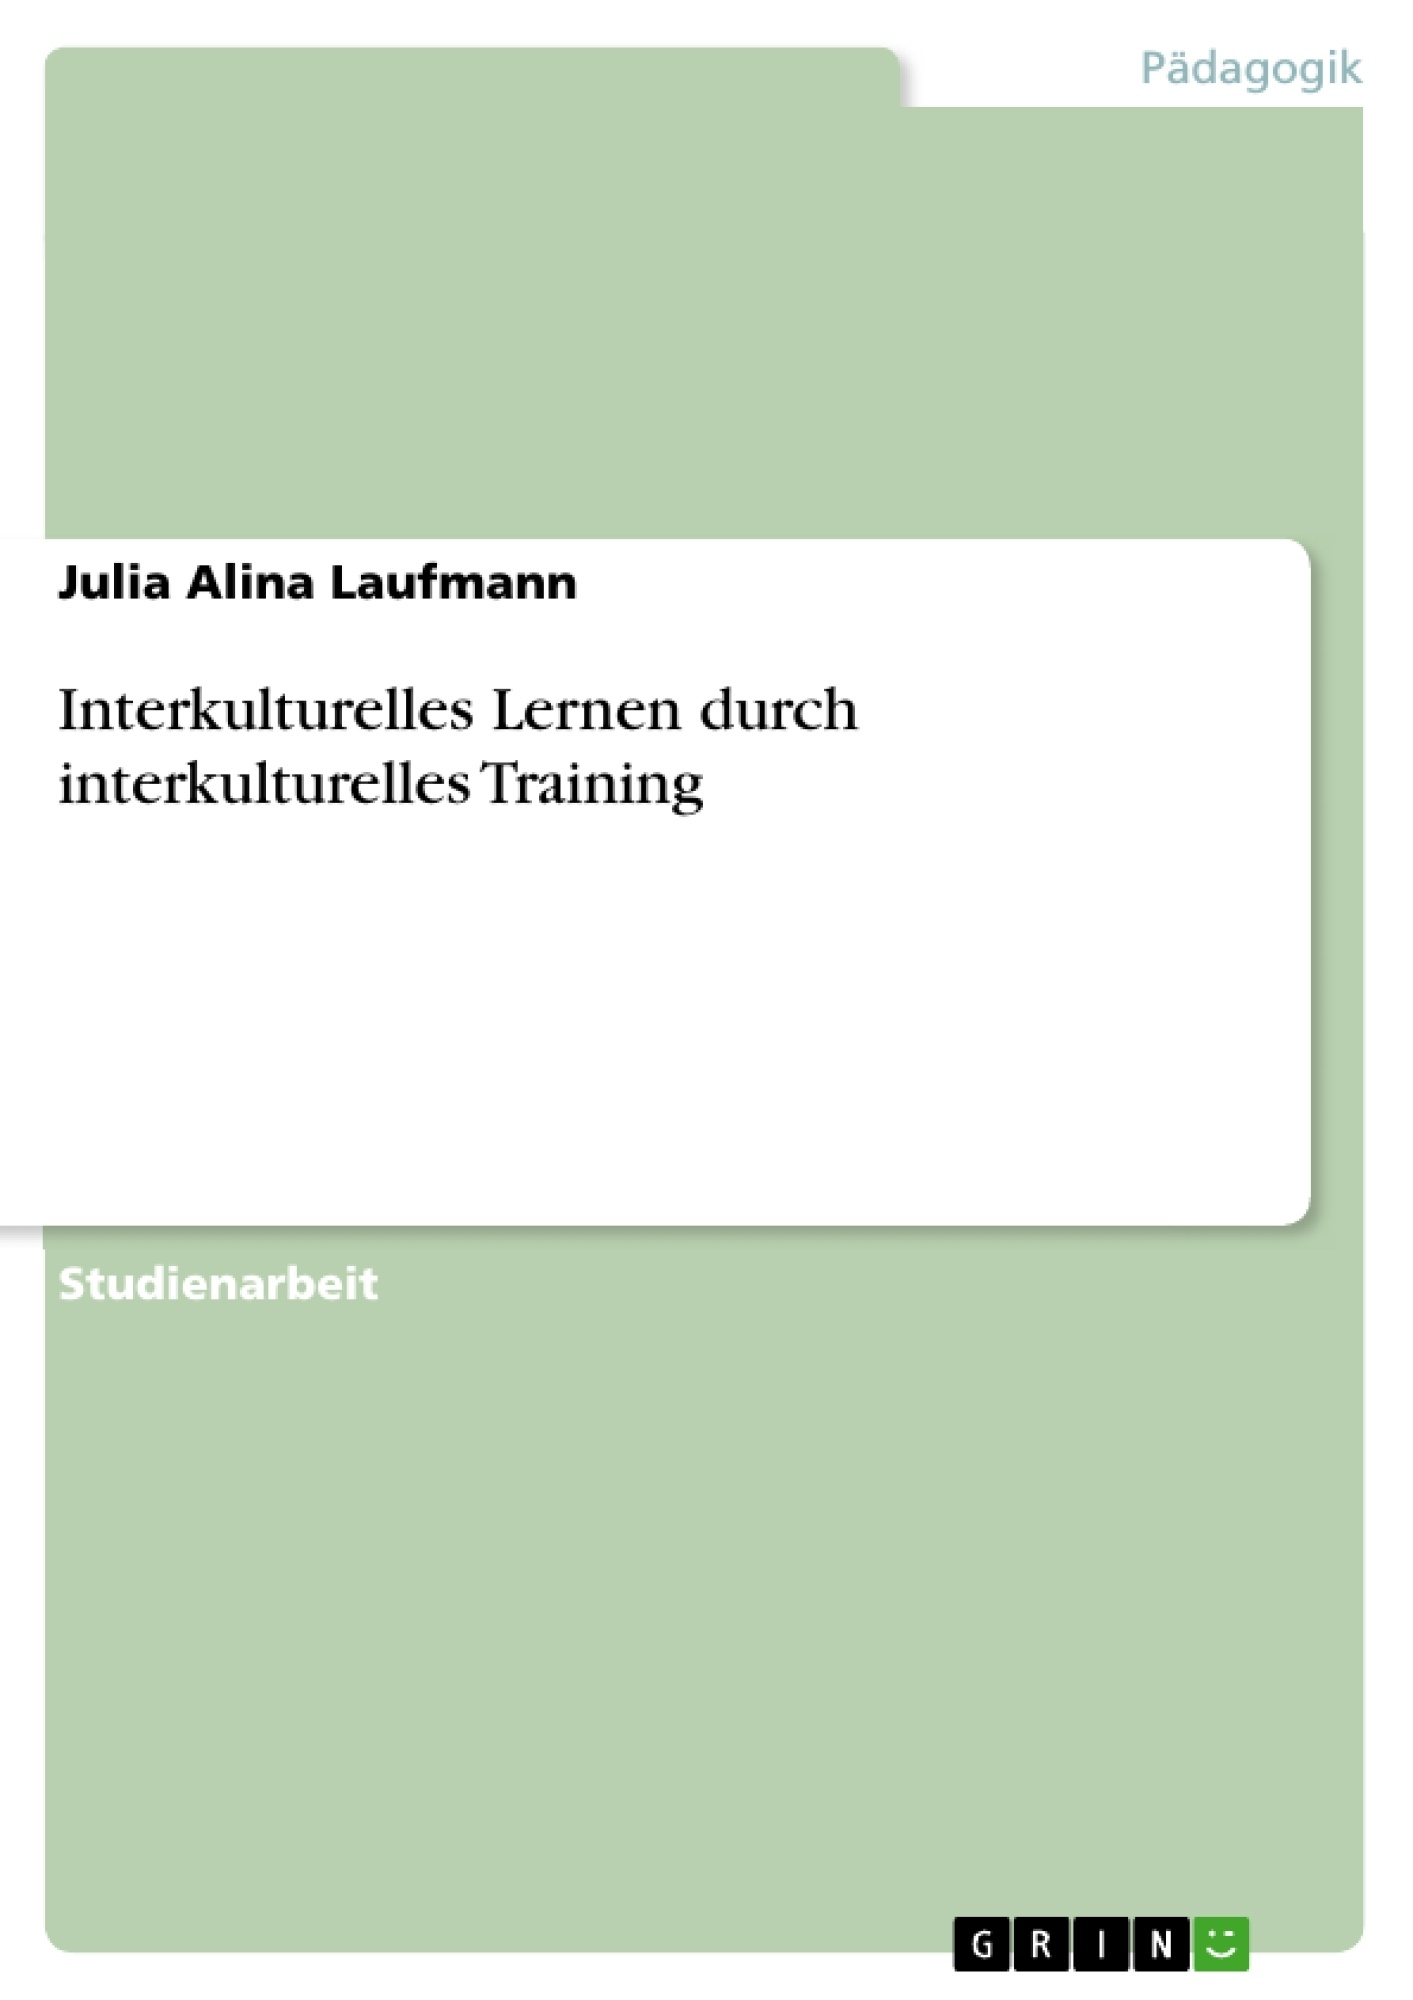 Titel: Interkulturelles Lernen durch interkulturelles Training